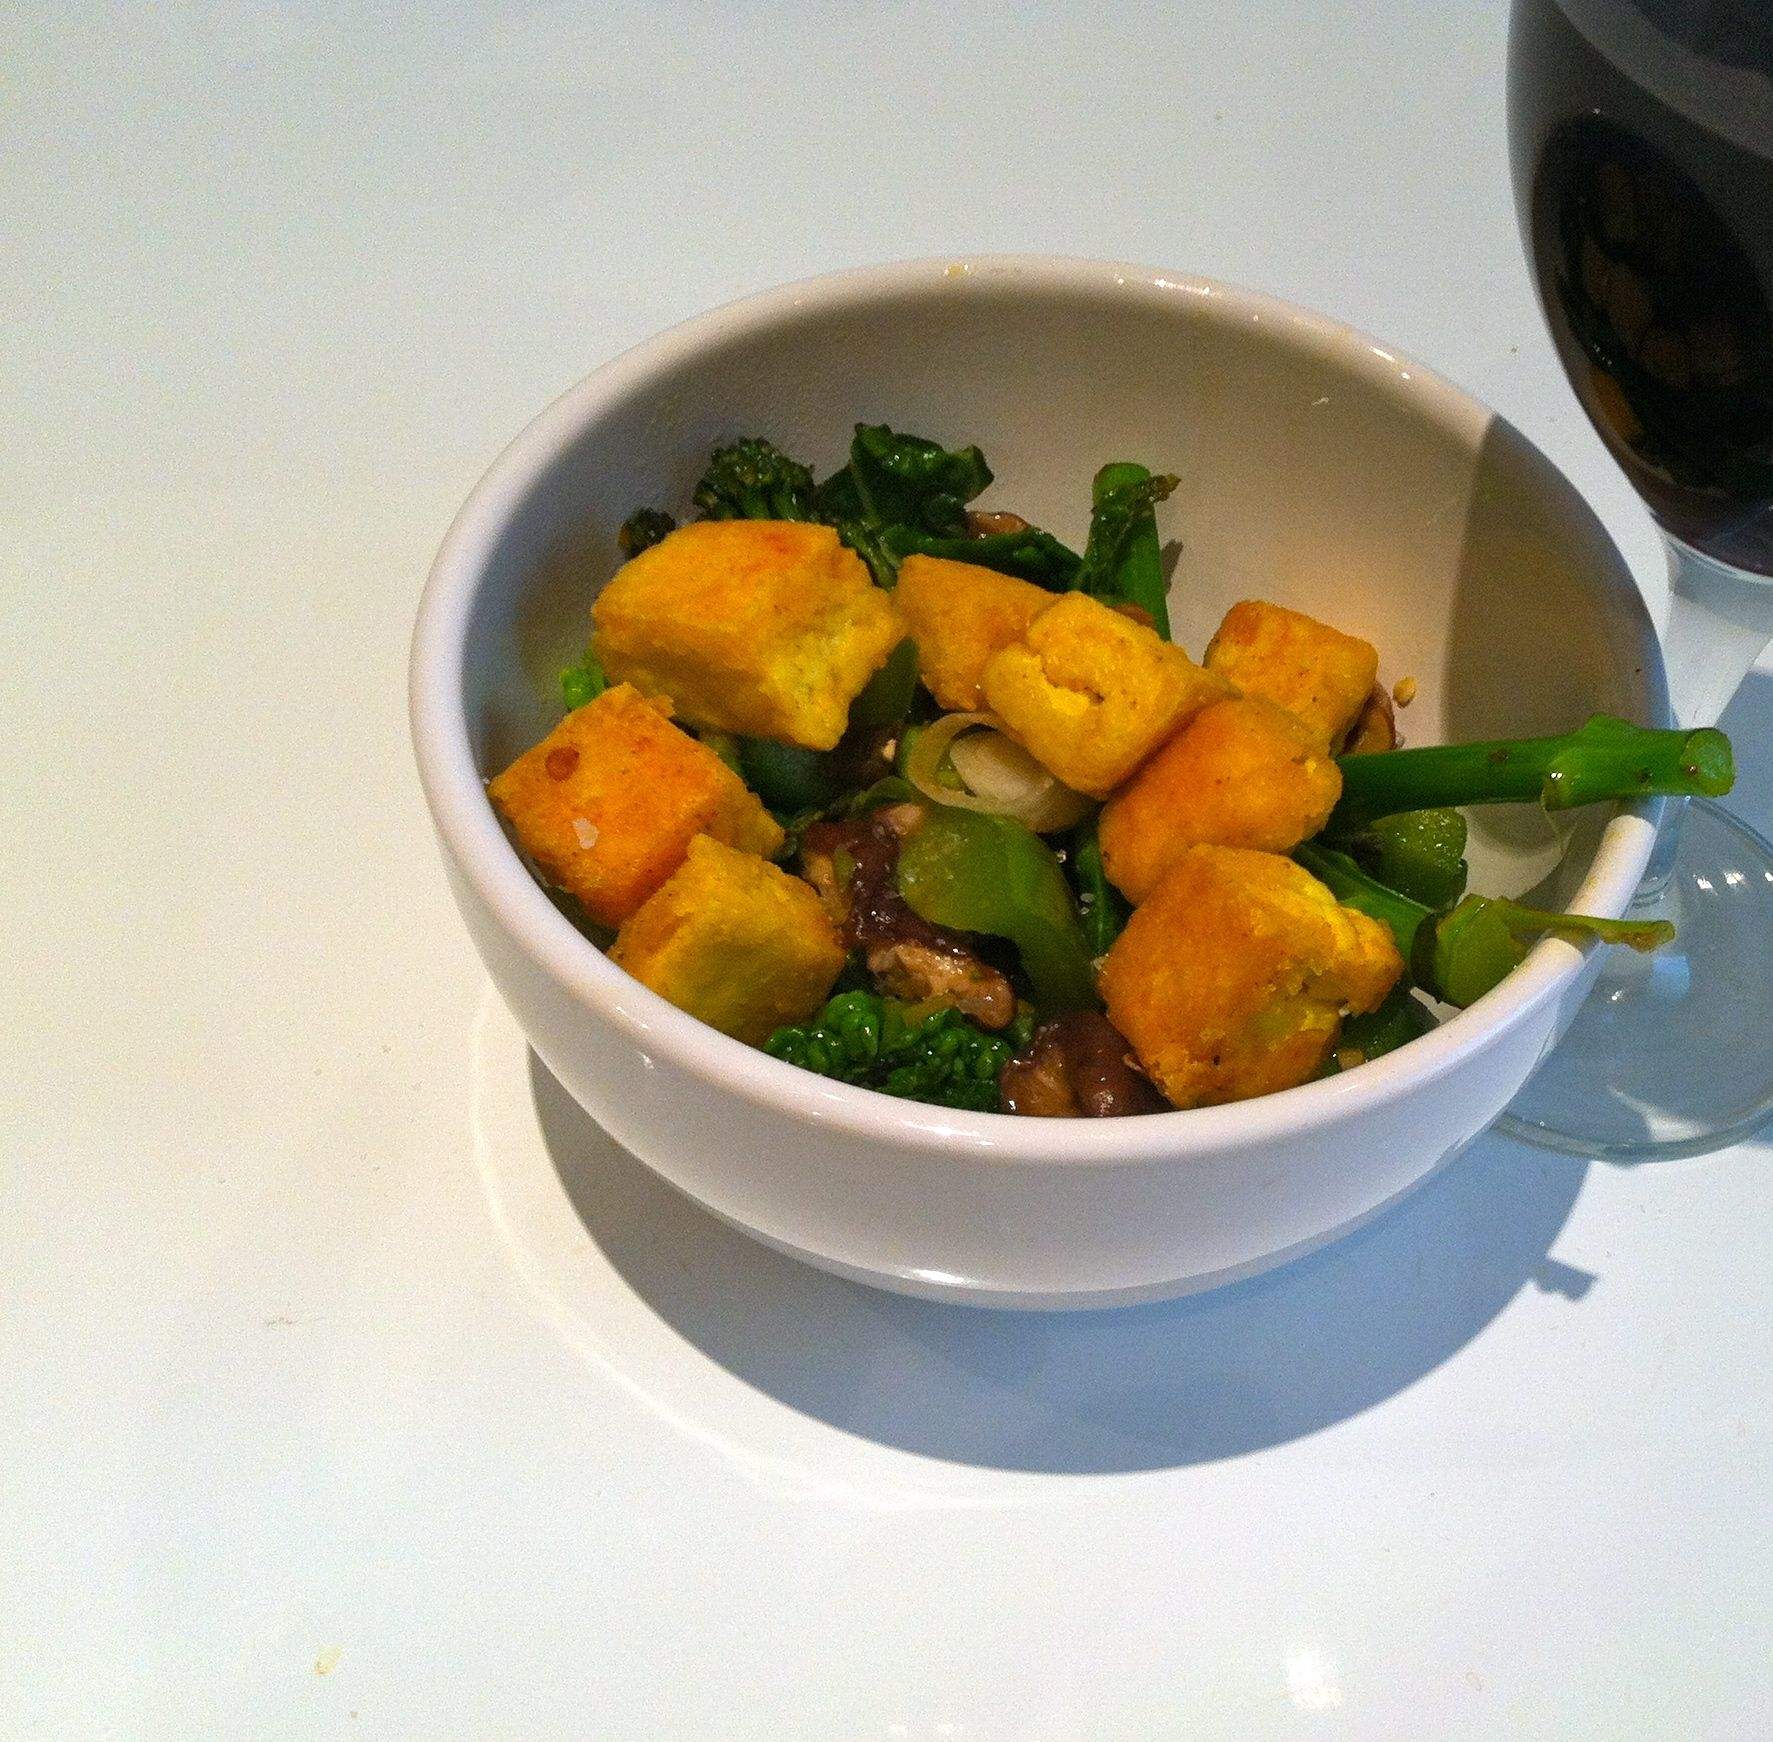 Golden Crispy Tofu with Spicy Green Vegetables http://carrotsandclaret.com/golden-crispy-tofu-with-spicy-green-vegetables/